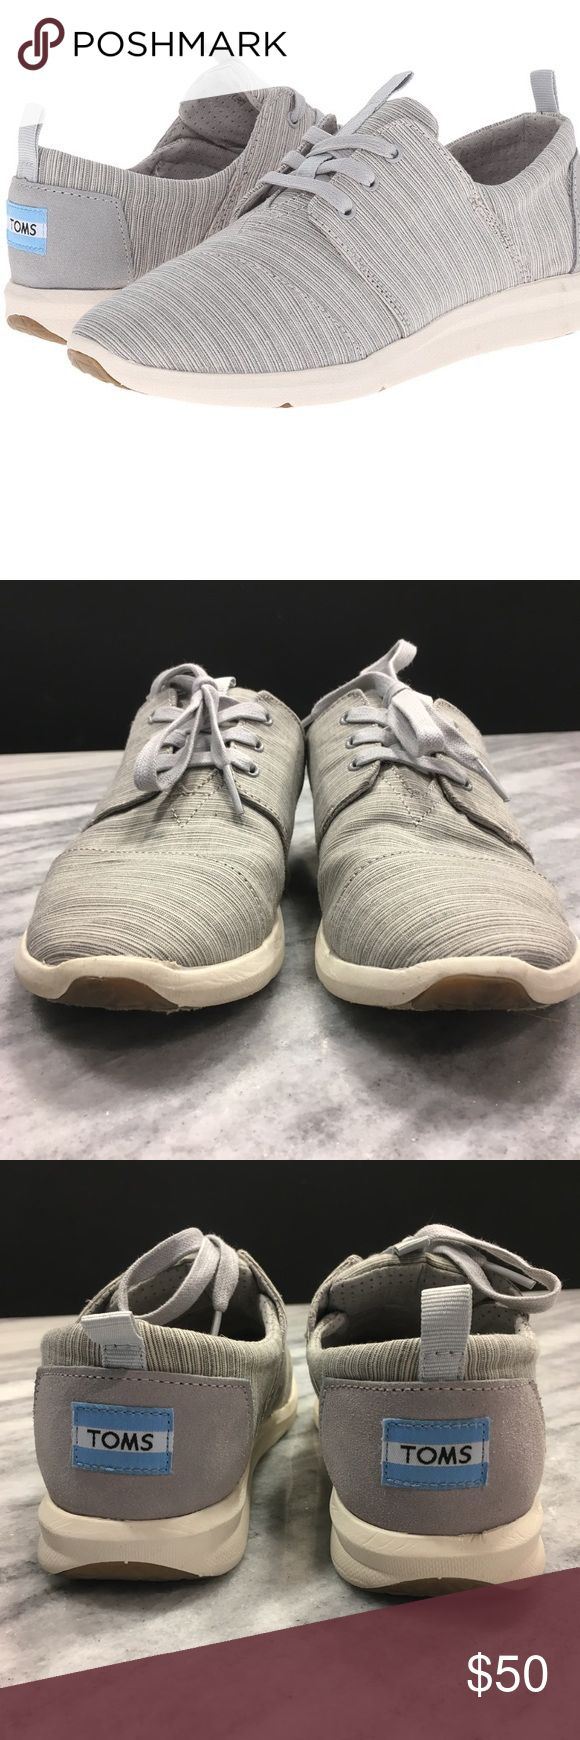 TOMS Light Grey Del Rey Sneakers Shoes Gently used, size 8, comfortable sneakers. No stains or scuffs!!! Please feel free to ask me any questions and bundle items for a bigger discount! Toms Shoes Sneakers